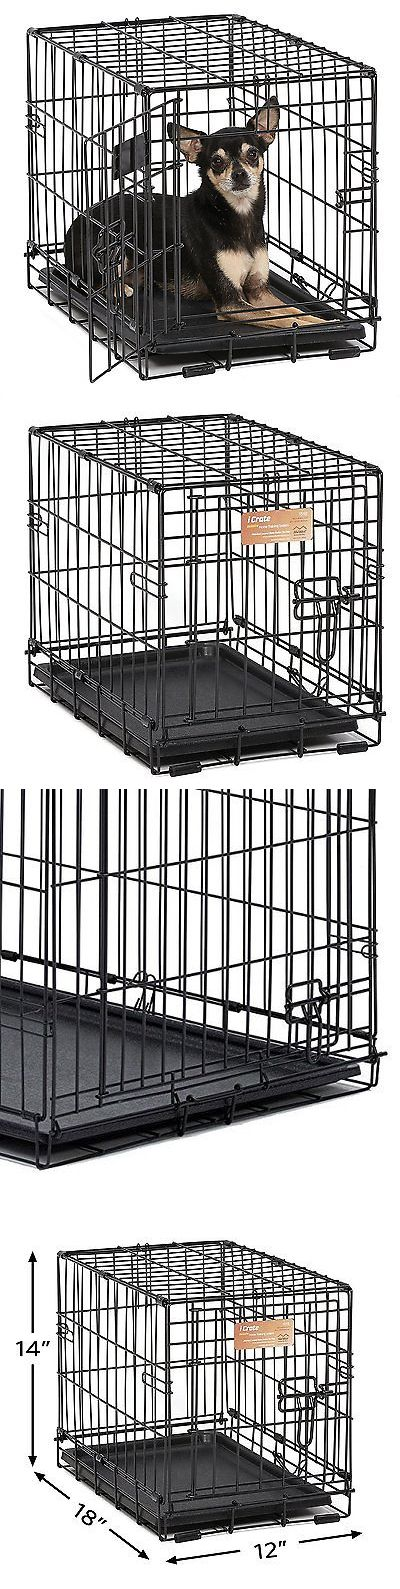 Animals Dog: Dog Pet Crates Crate Single Door Training Iron Travel Cage Cat Small Safe Fold -> BUY IT NOW ONLY: $33.7 on eBay!